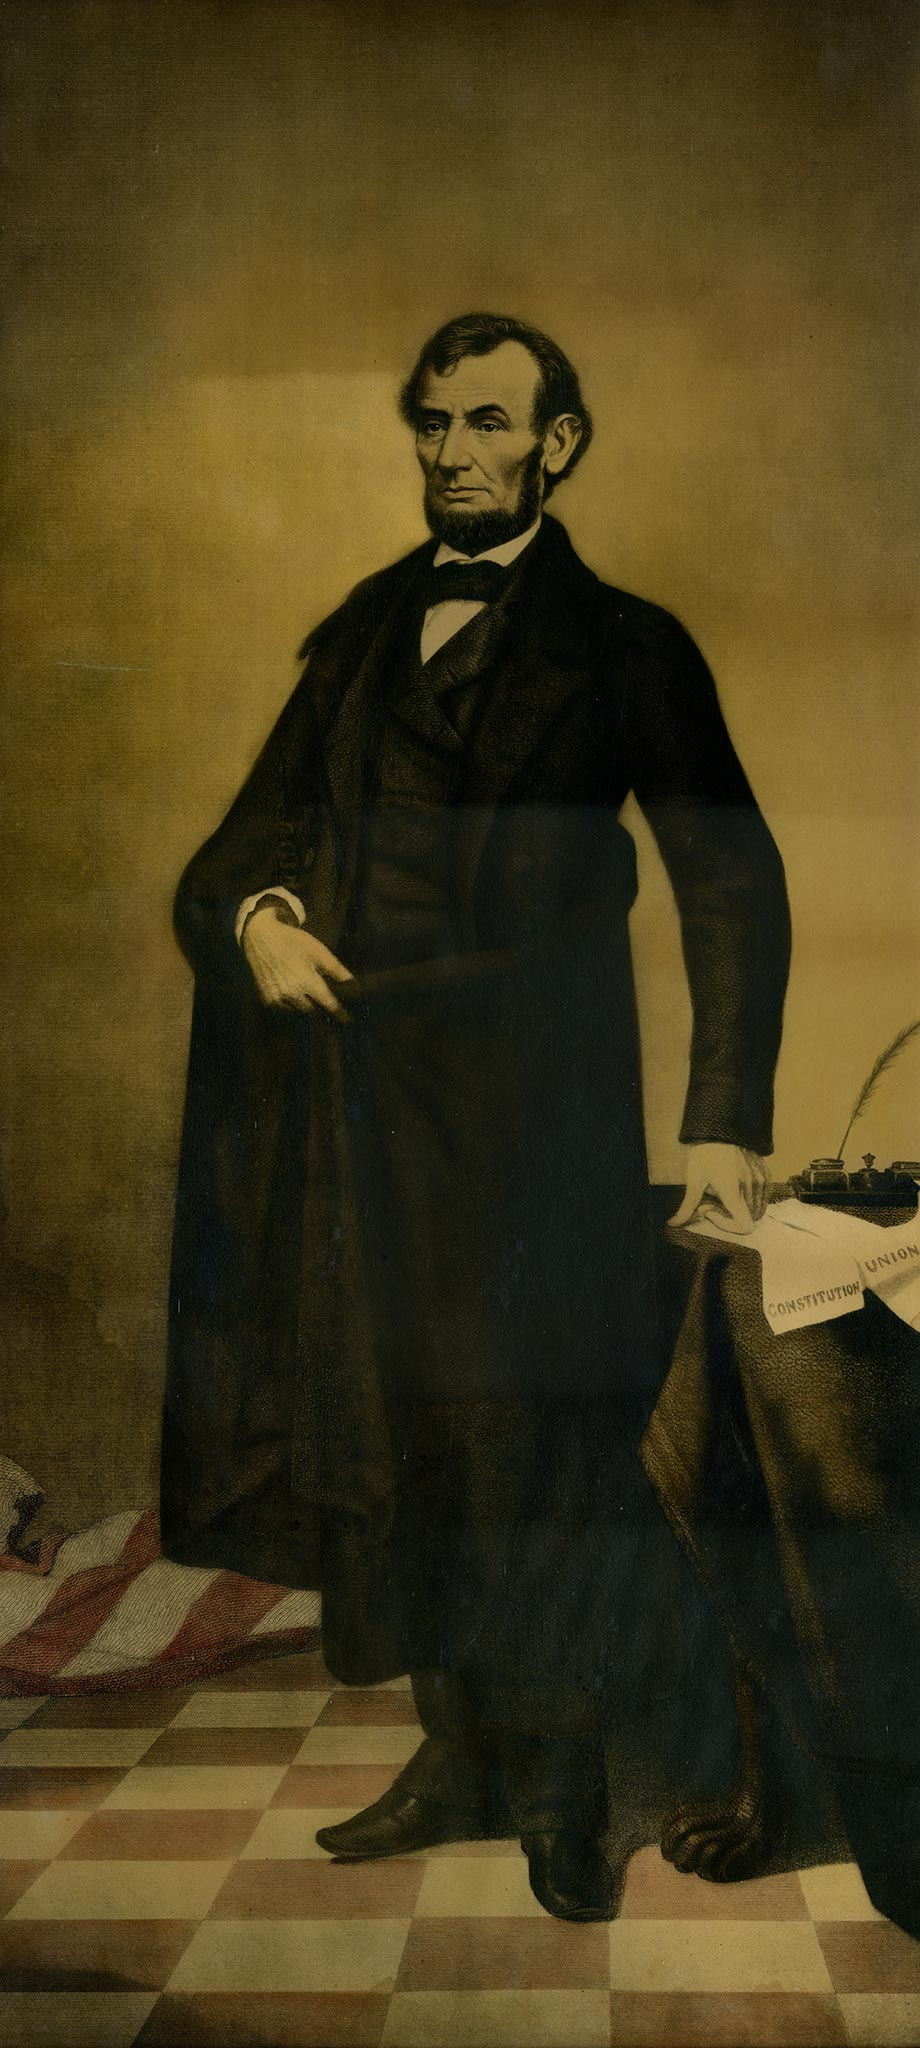 William Pate created this mezzotint engraving of the 16th president by using the background and body from Alexander Ritchie's 1852 engraving of John C. Calhoun and replacing Calhoun's head with Abraham Lincoln's. Judge Williams notes that this portrait, which was displayed in his 6th-grade classroom, was the inspiration for his 60-year study of Lincoln and the Civil War and the Frank J. and Virginia Williams Collection.